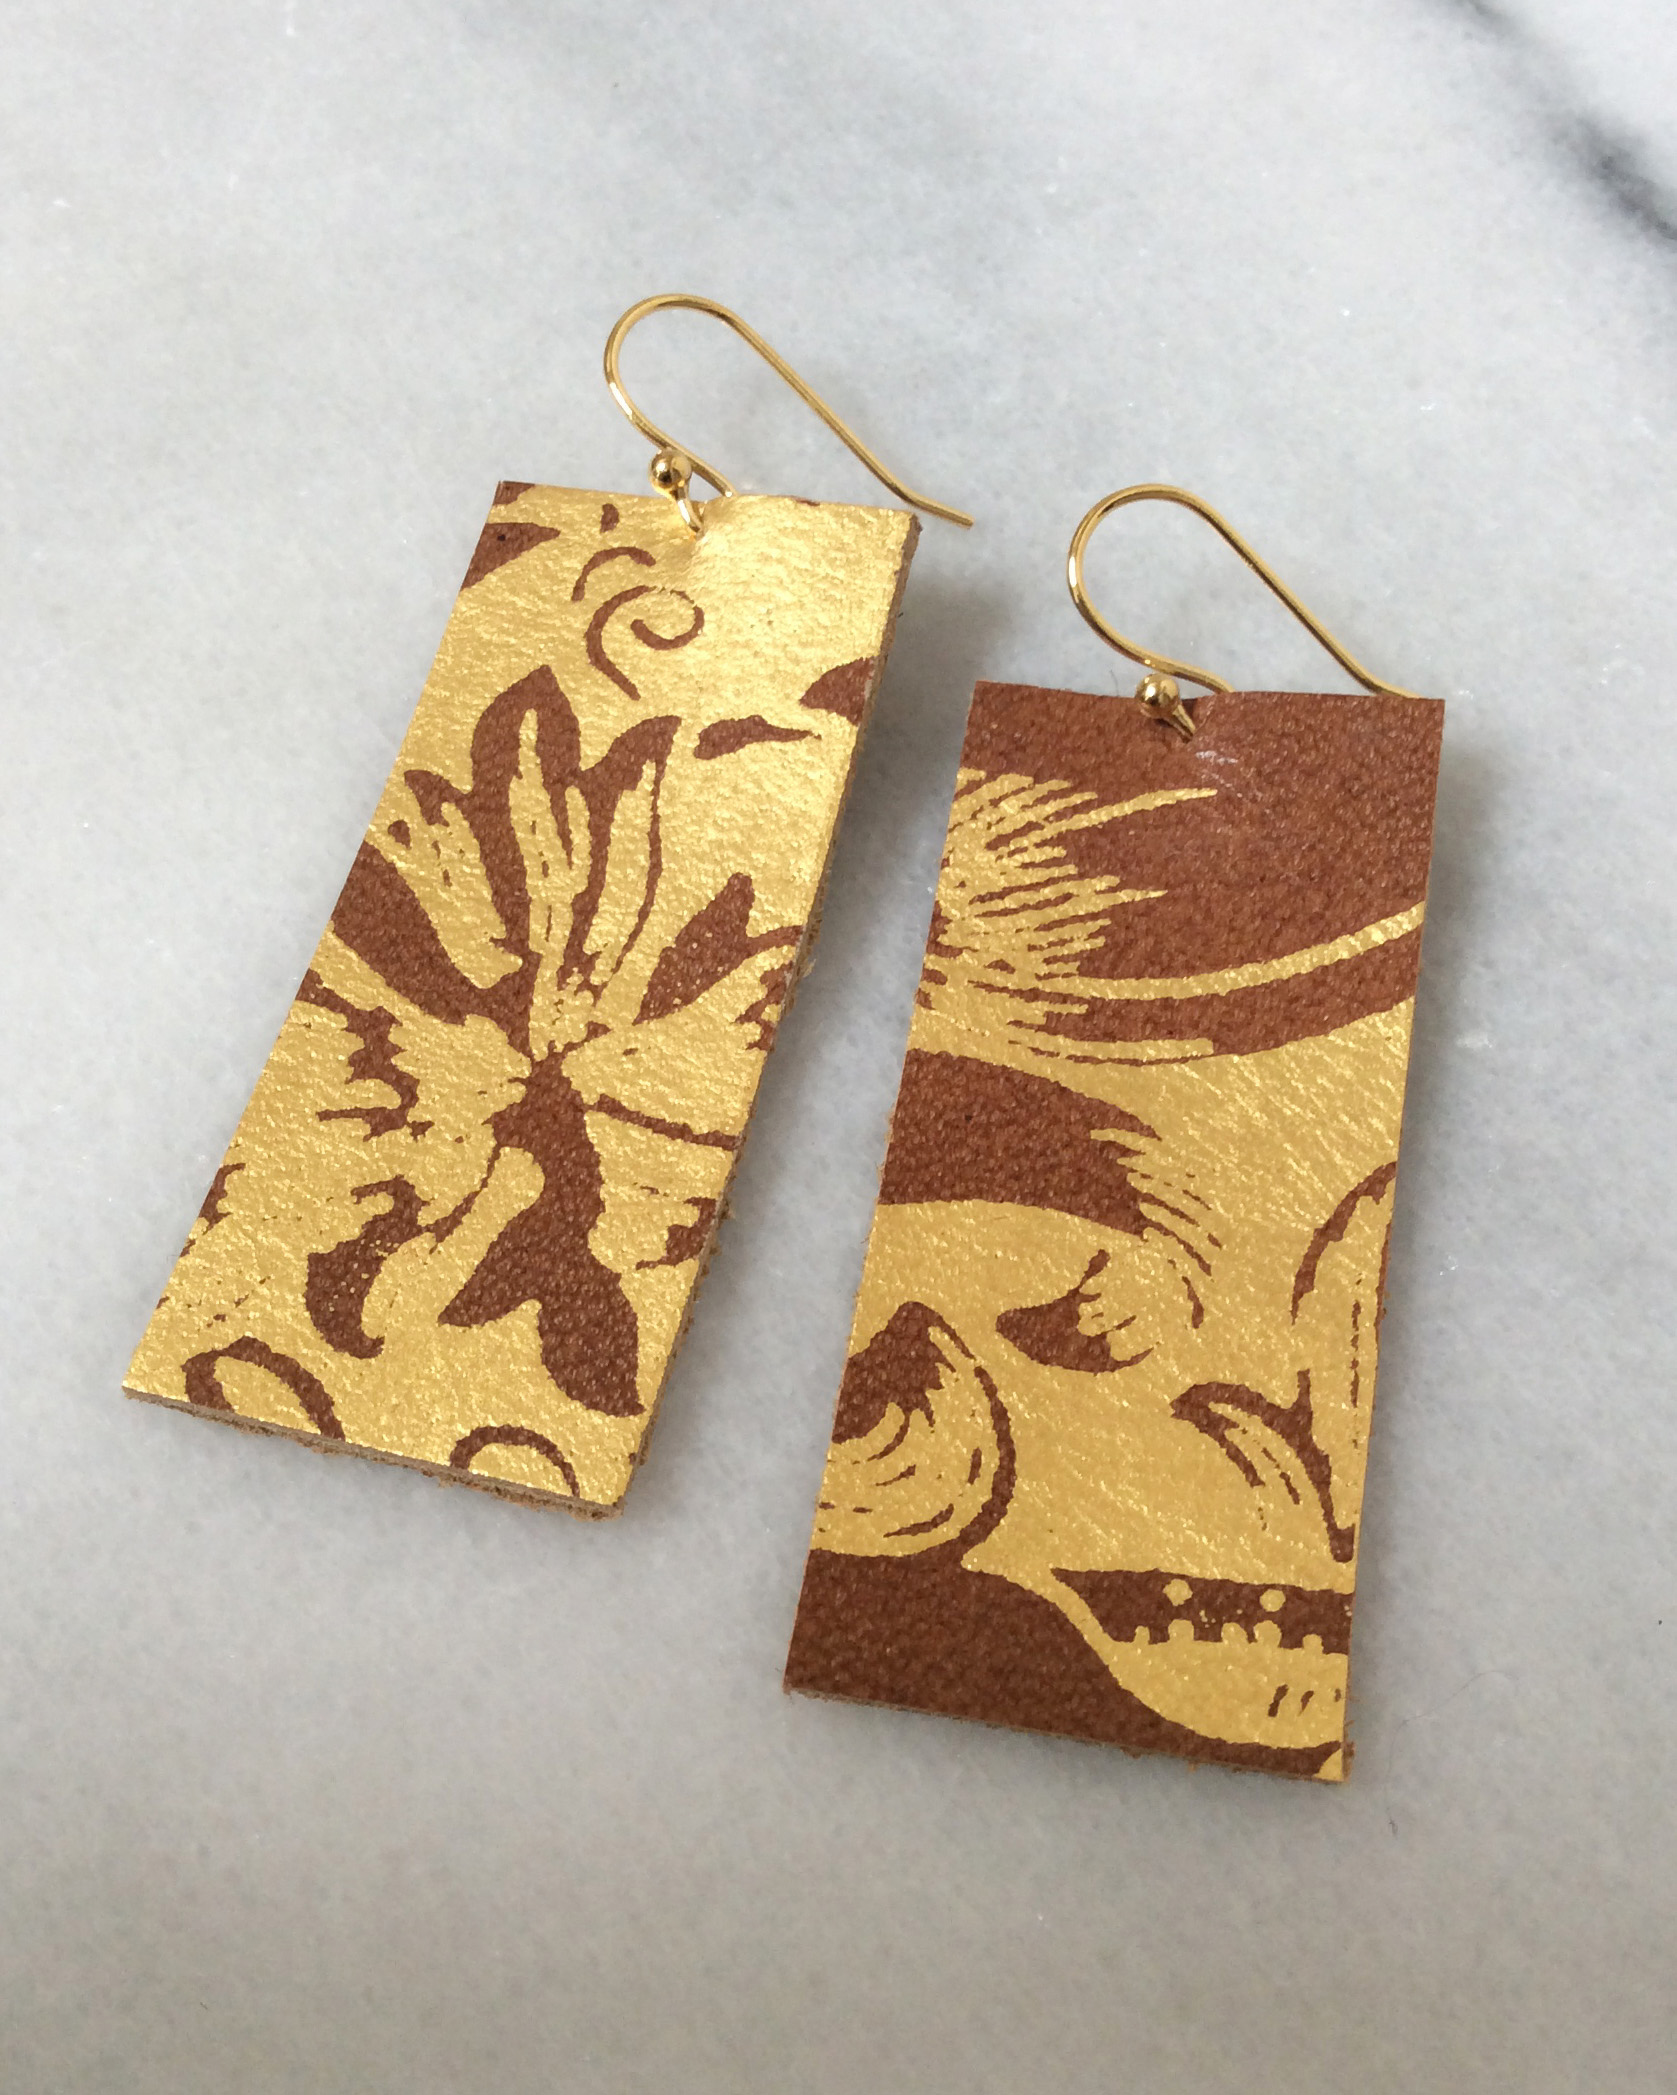 Leather earrings with gold leaf.